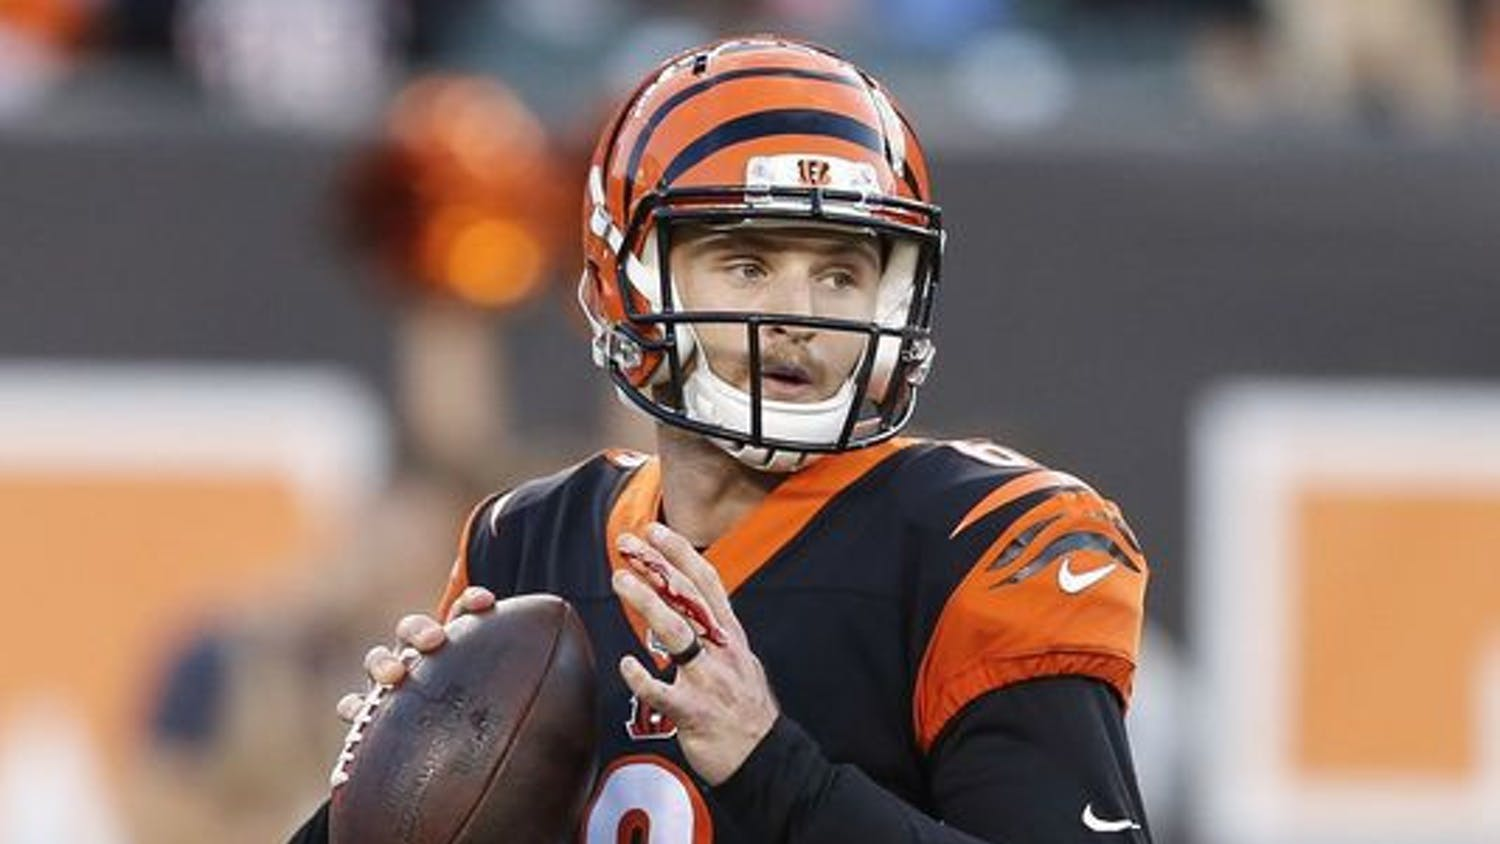 Former Florida and Louisiana Tech quarterback Jeff Driskel came in for the injured Andy Dalton in the Cincinnati Bengals' 35-20 loss to the Cleveland Browns. Driskel threw 17-for-29 with a touchdown.